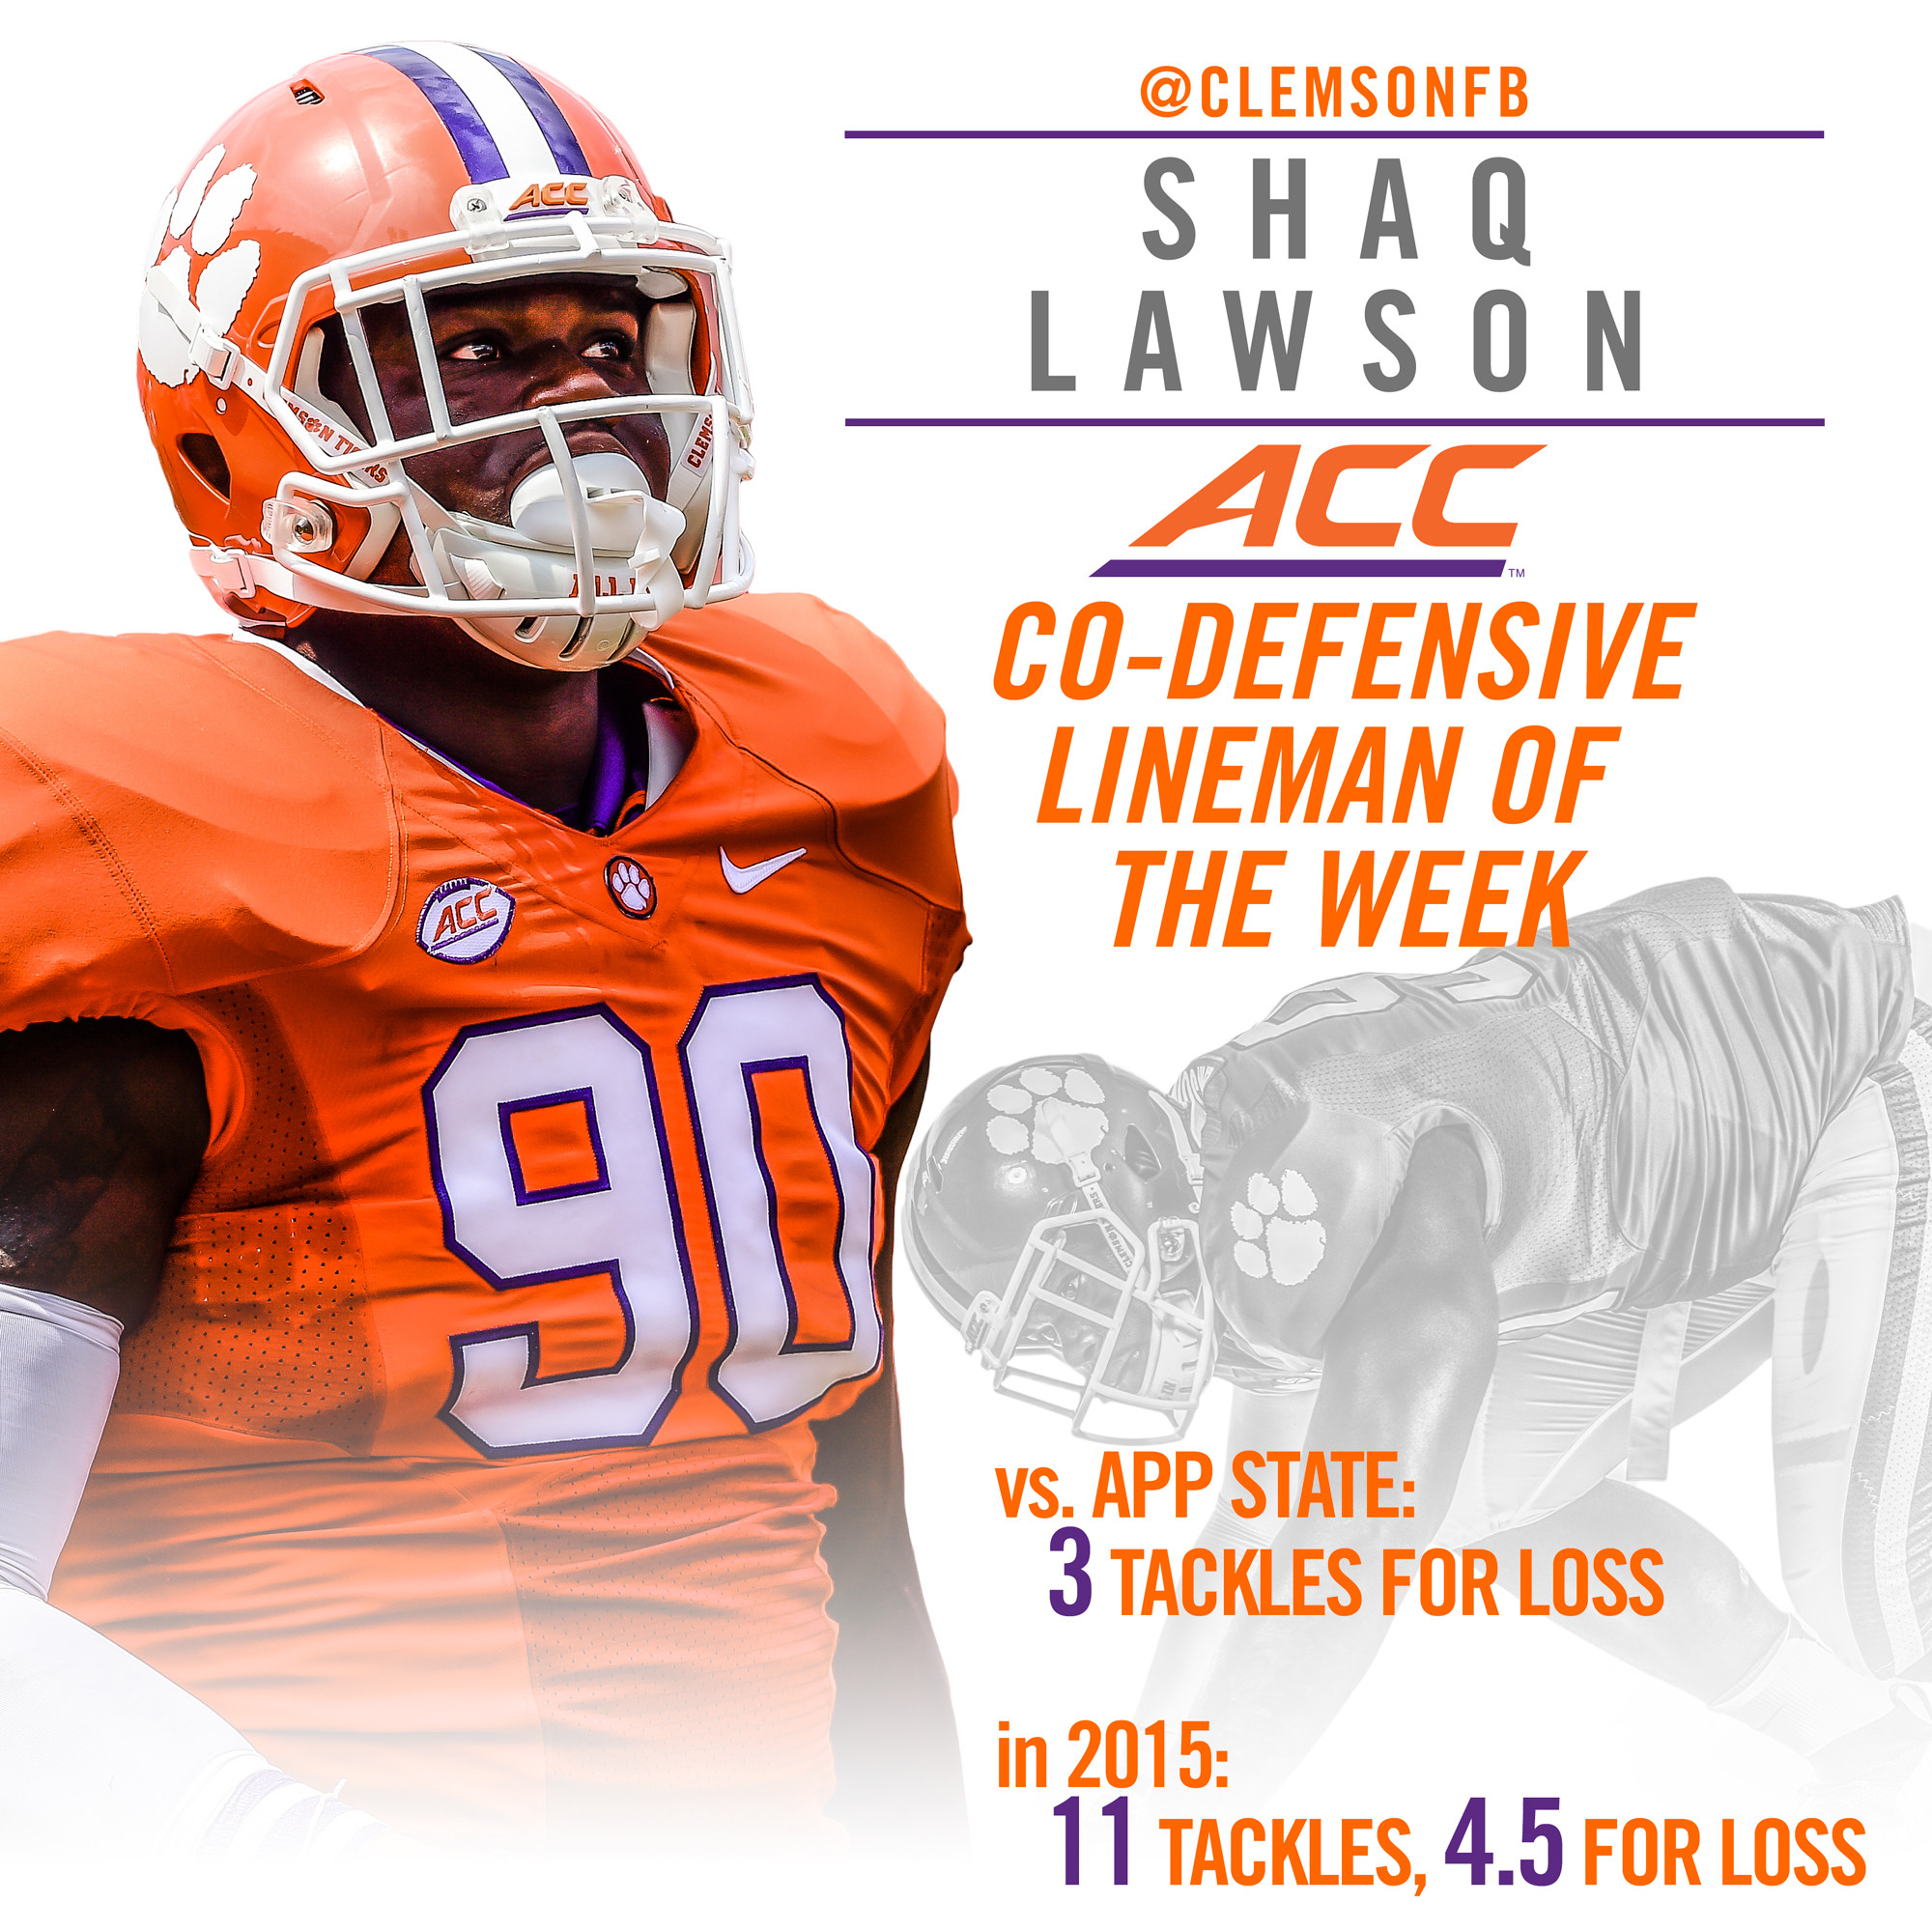 Lawson Honored by ACC